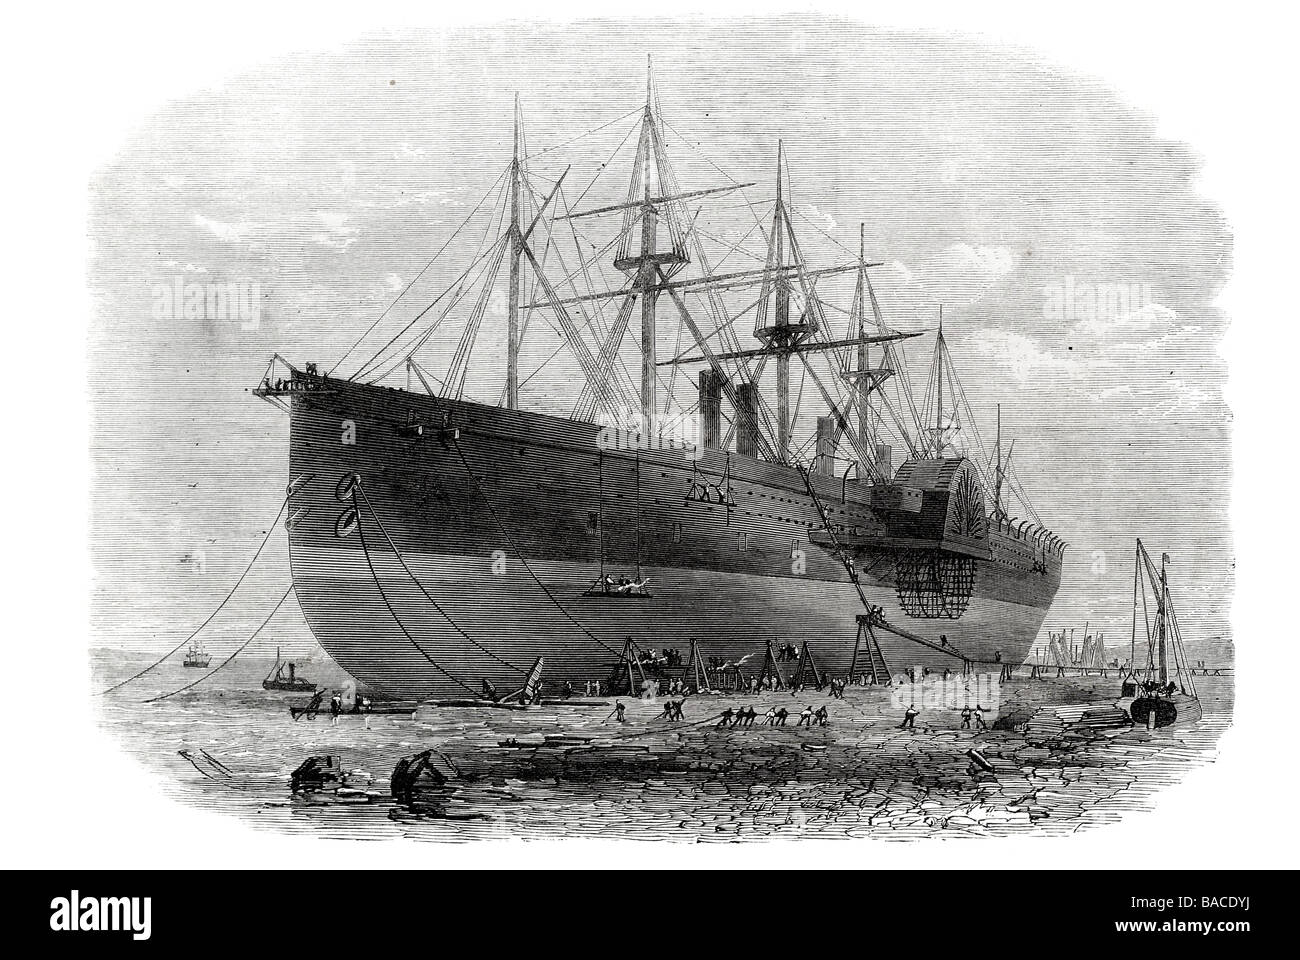 the great eastern under repairs on the cheshire shore of the mersey 1867 - Stock Image